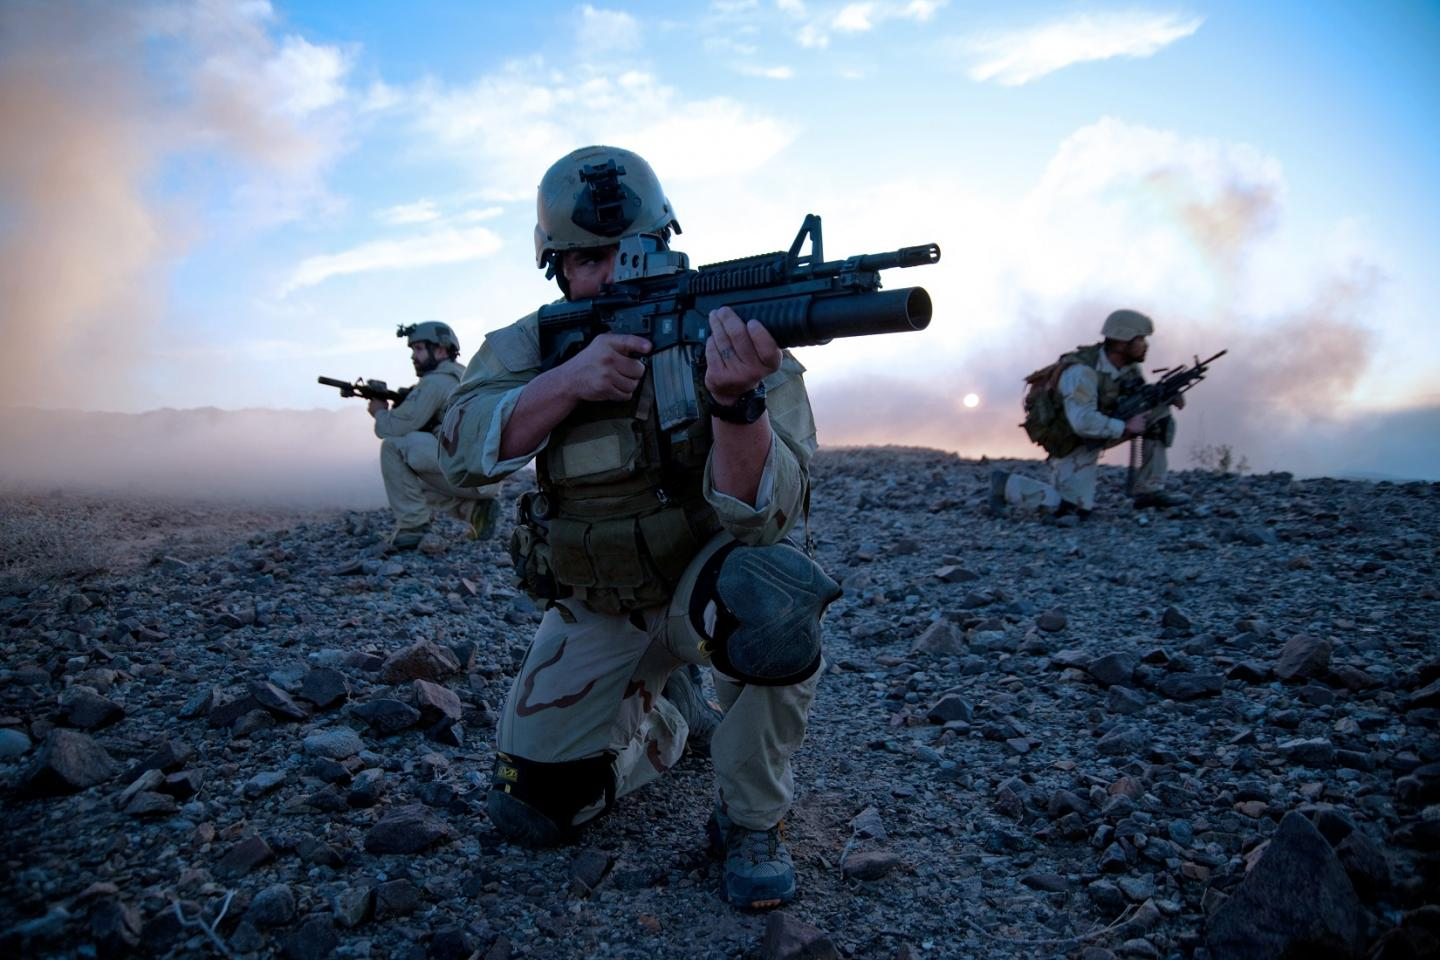 The Navy Reportedly booted SEAL Team 7 out of Iraq